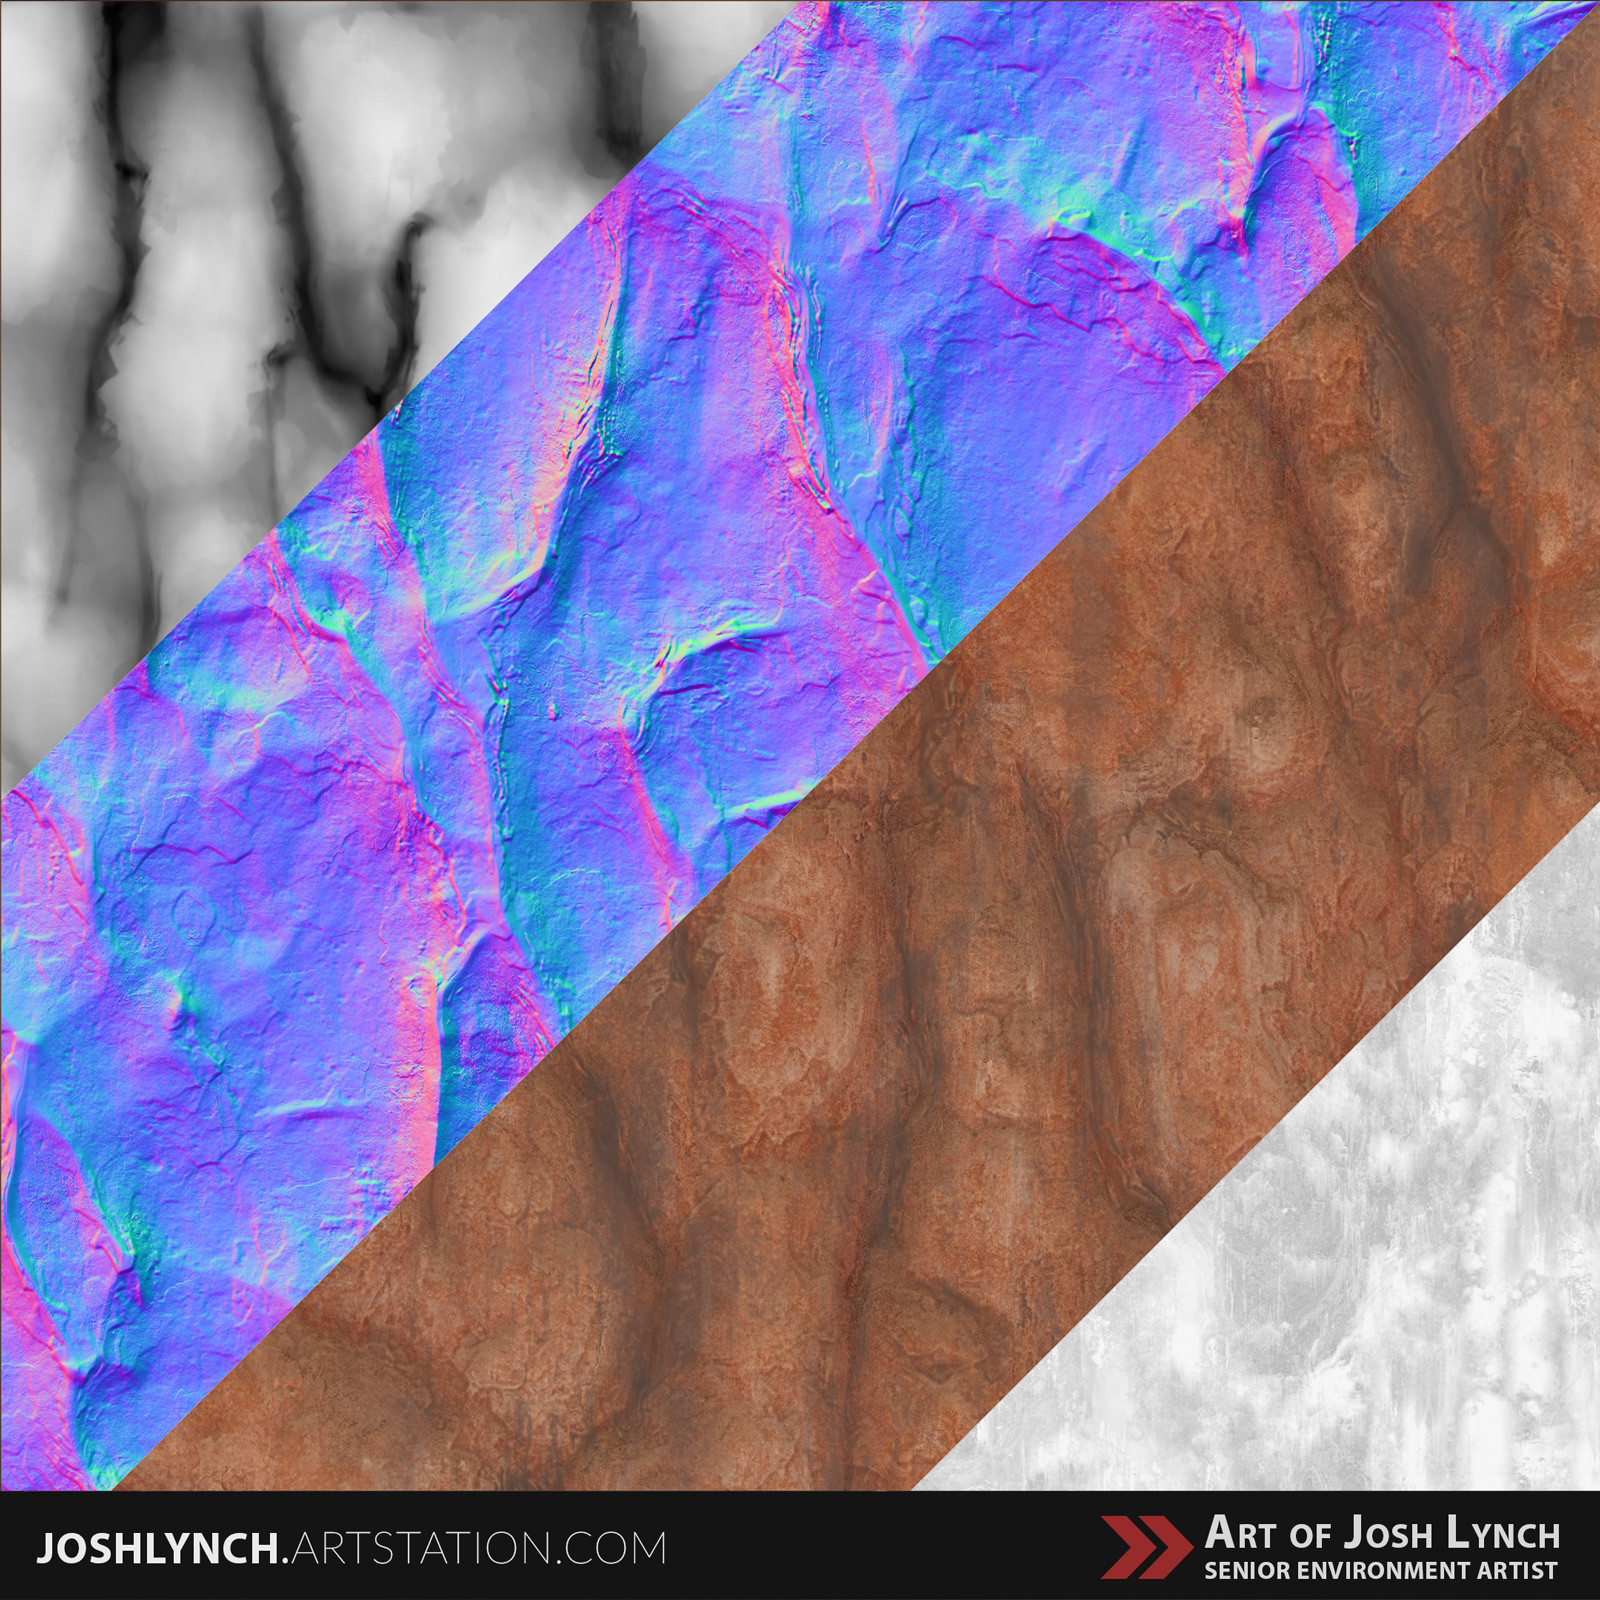 Joshua lynch rock wall 05 layout comp sqyare textures